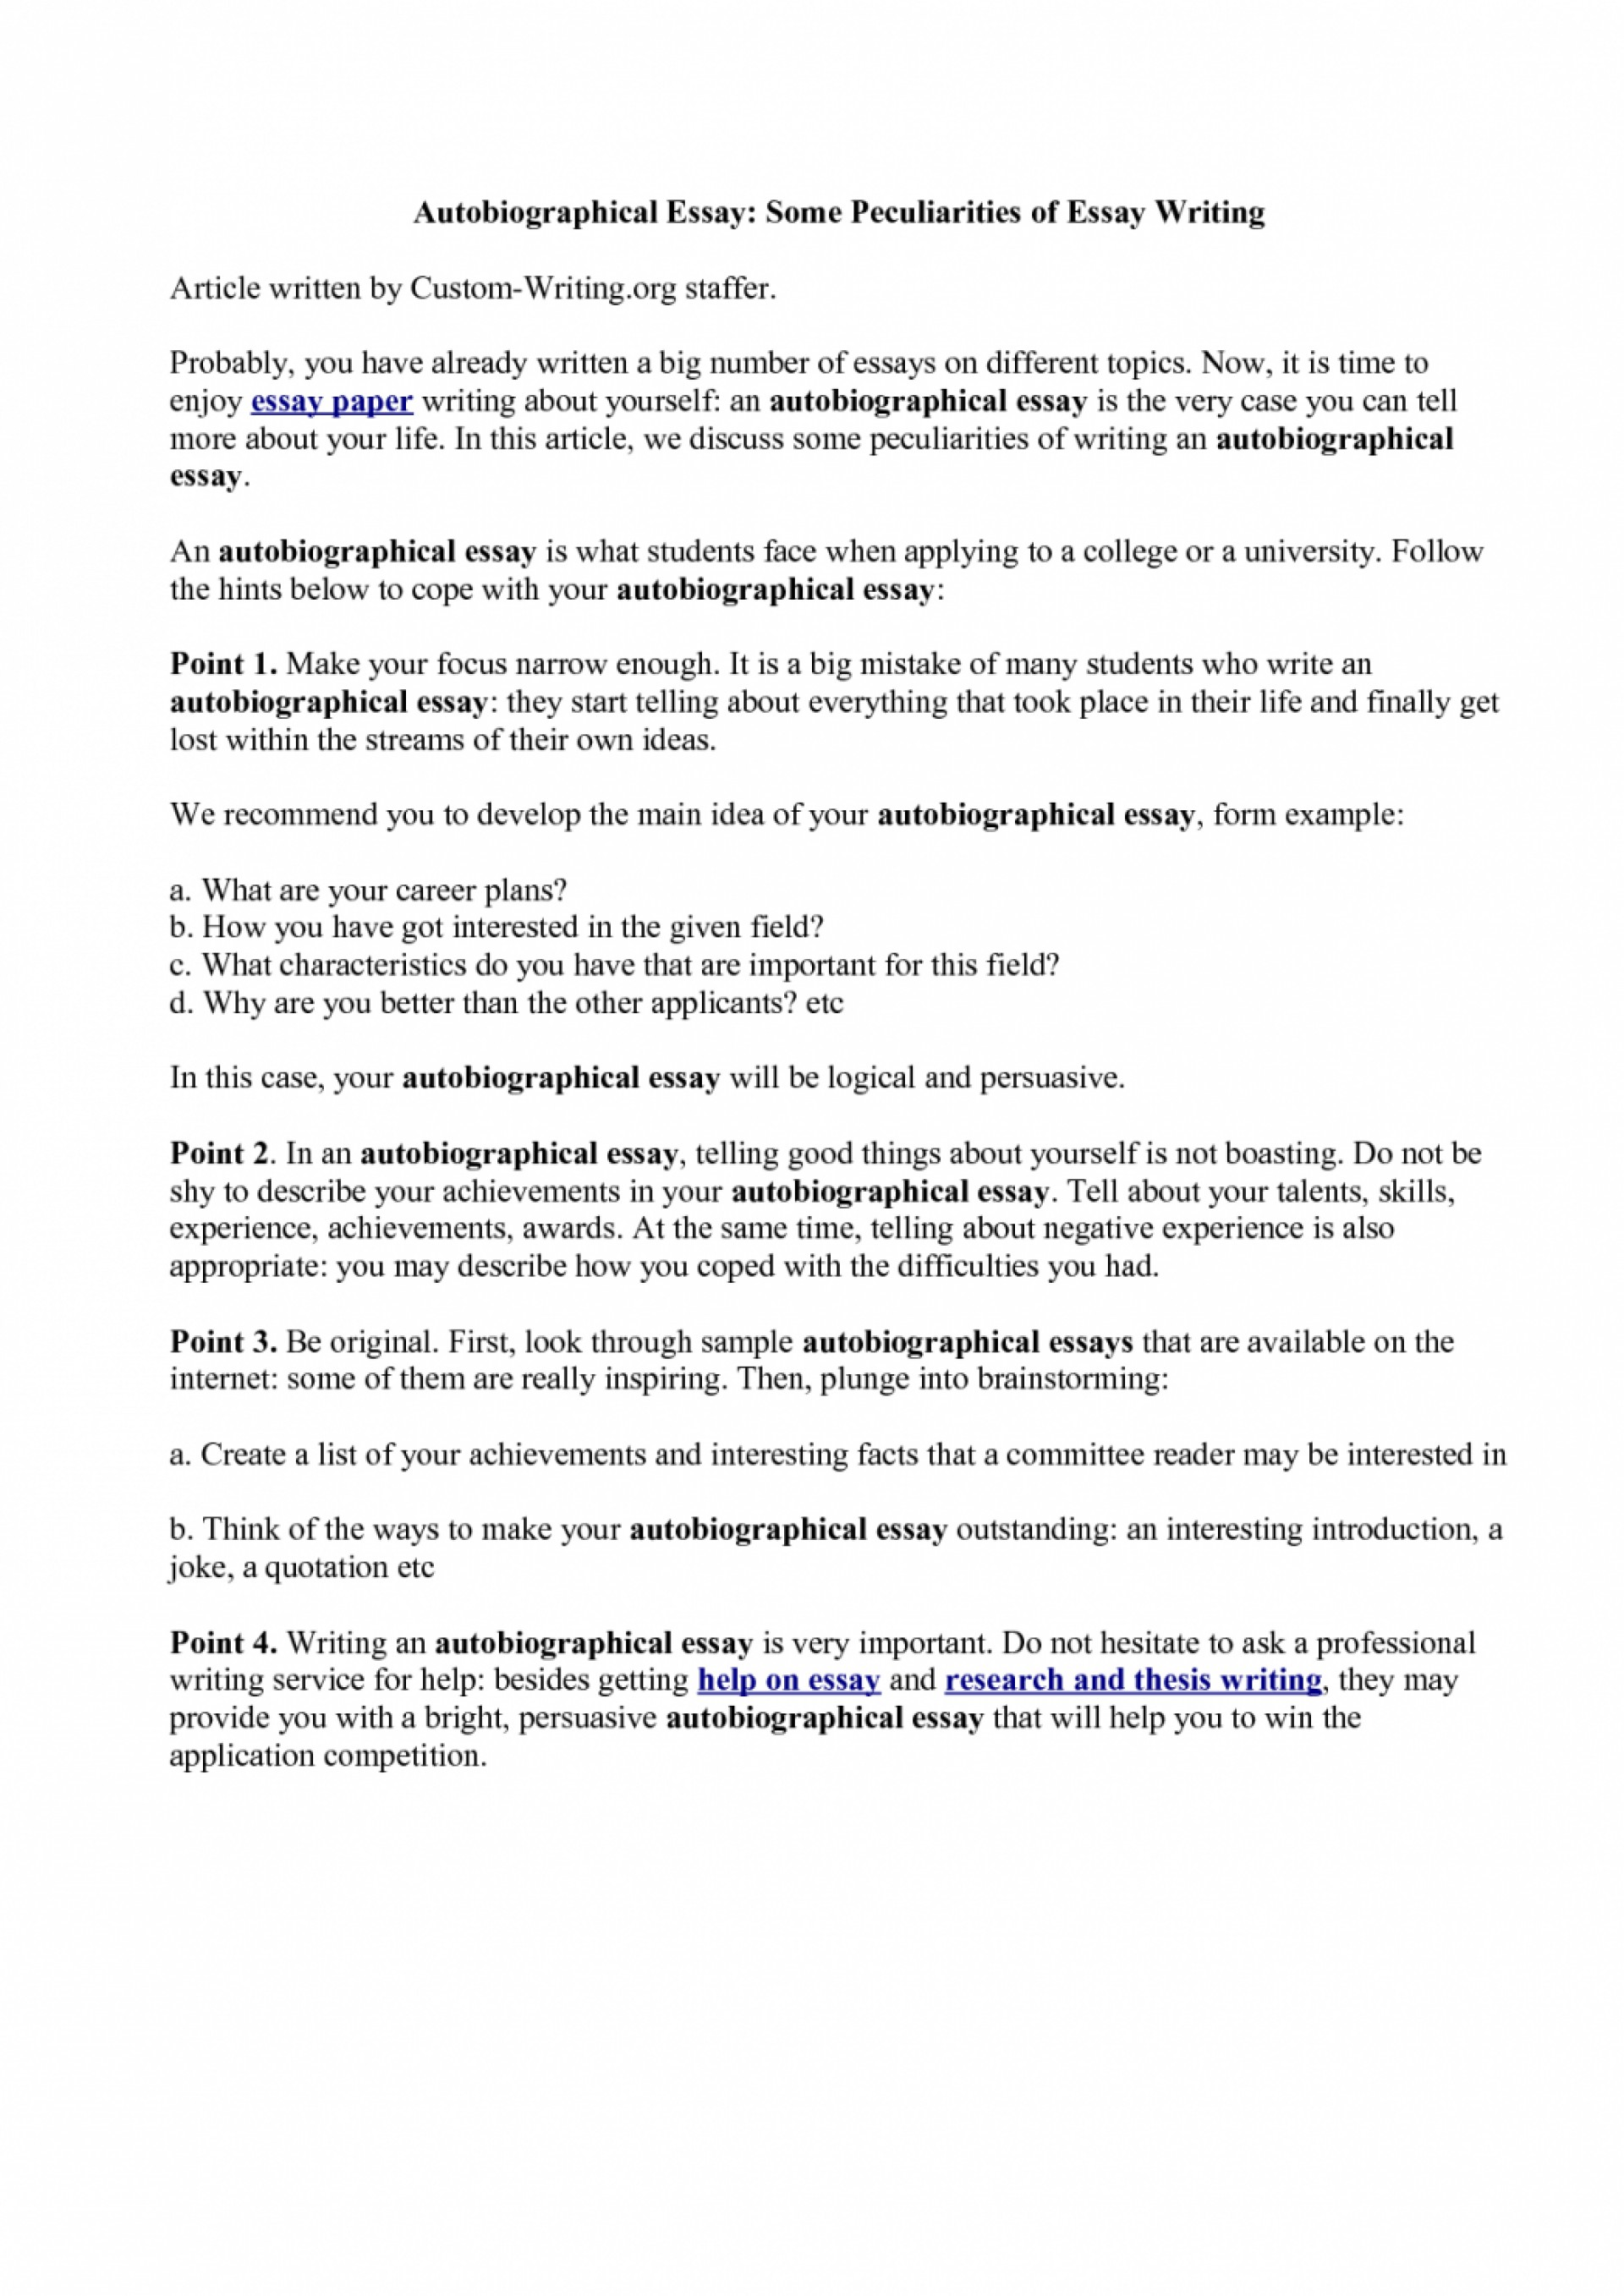 005 How To Start Autobiography Essay Example Of Telling About Yourself Shawn Weatherly Writing An Luxury Write Autobiographical For Job Written Graduate School Outline Singular Annotated Bibliography Examples A Good Scholarship 1920